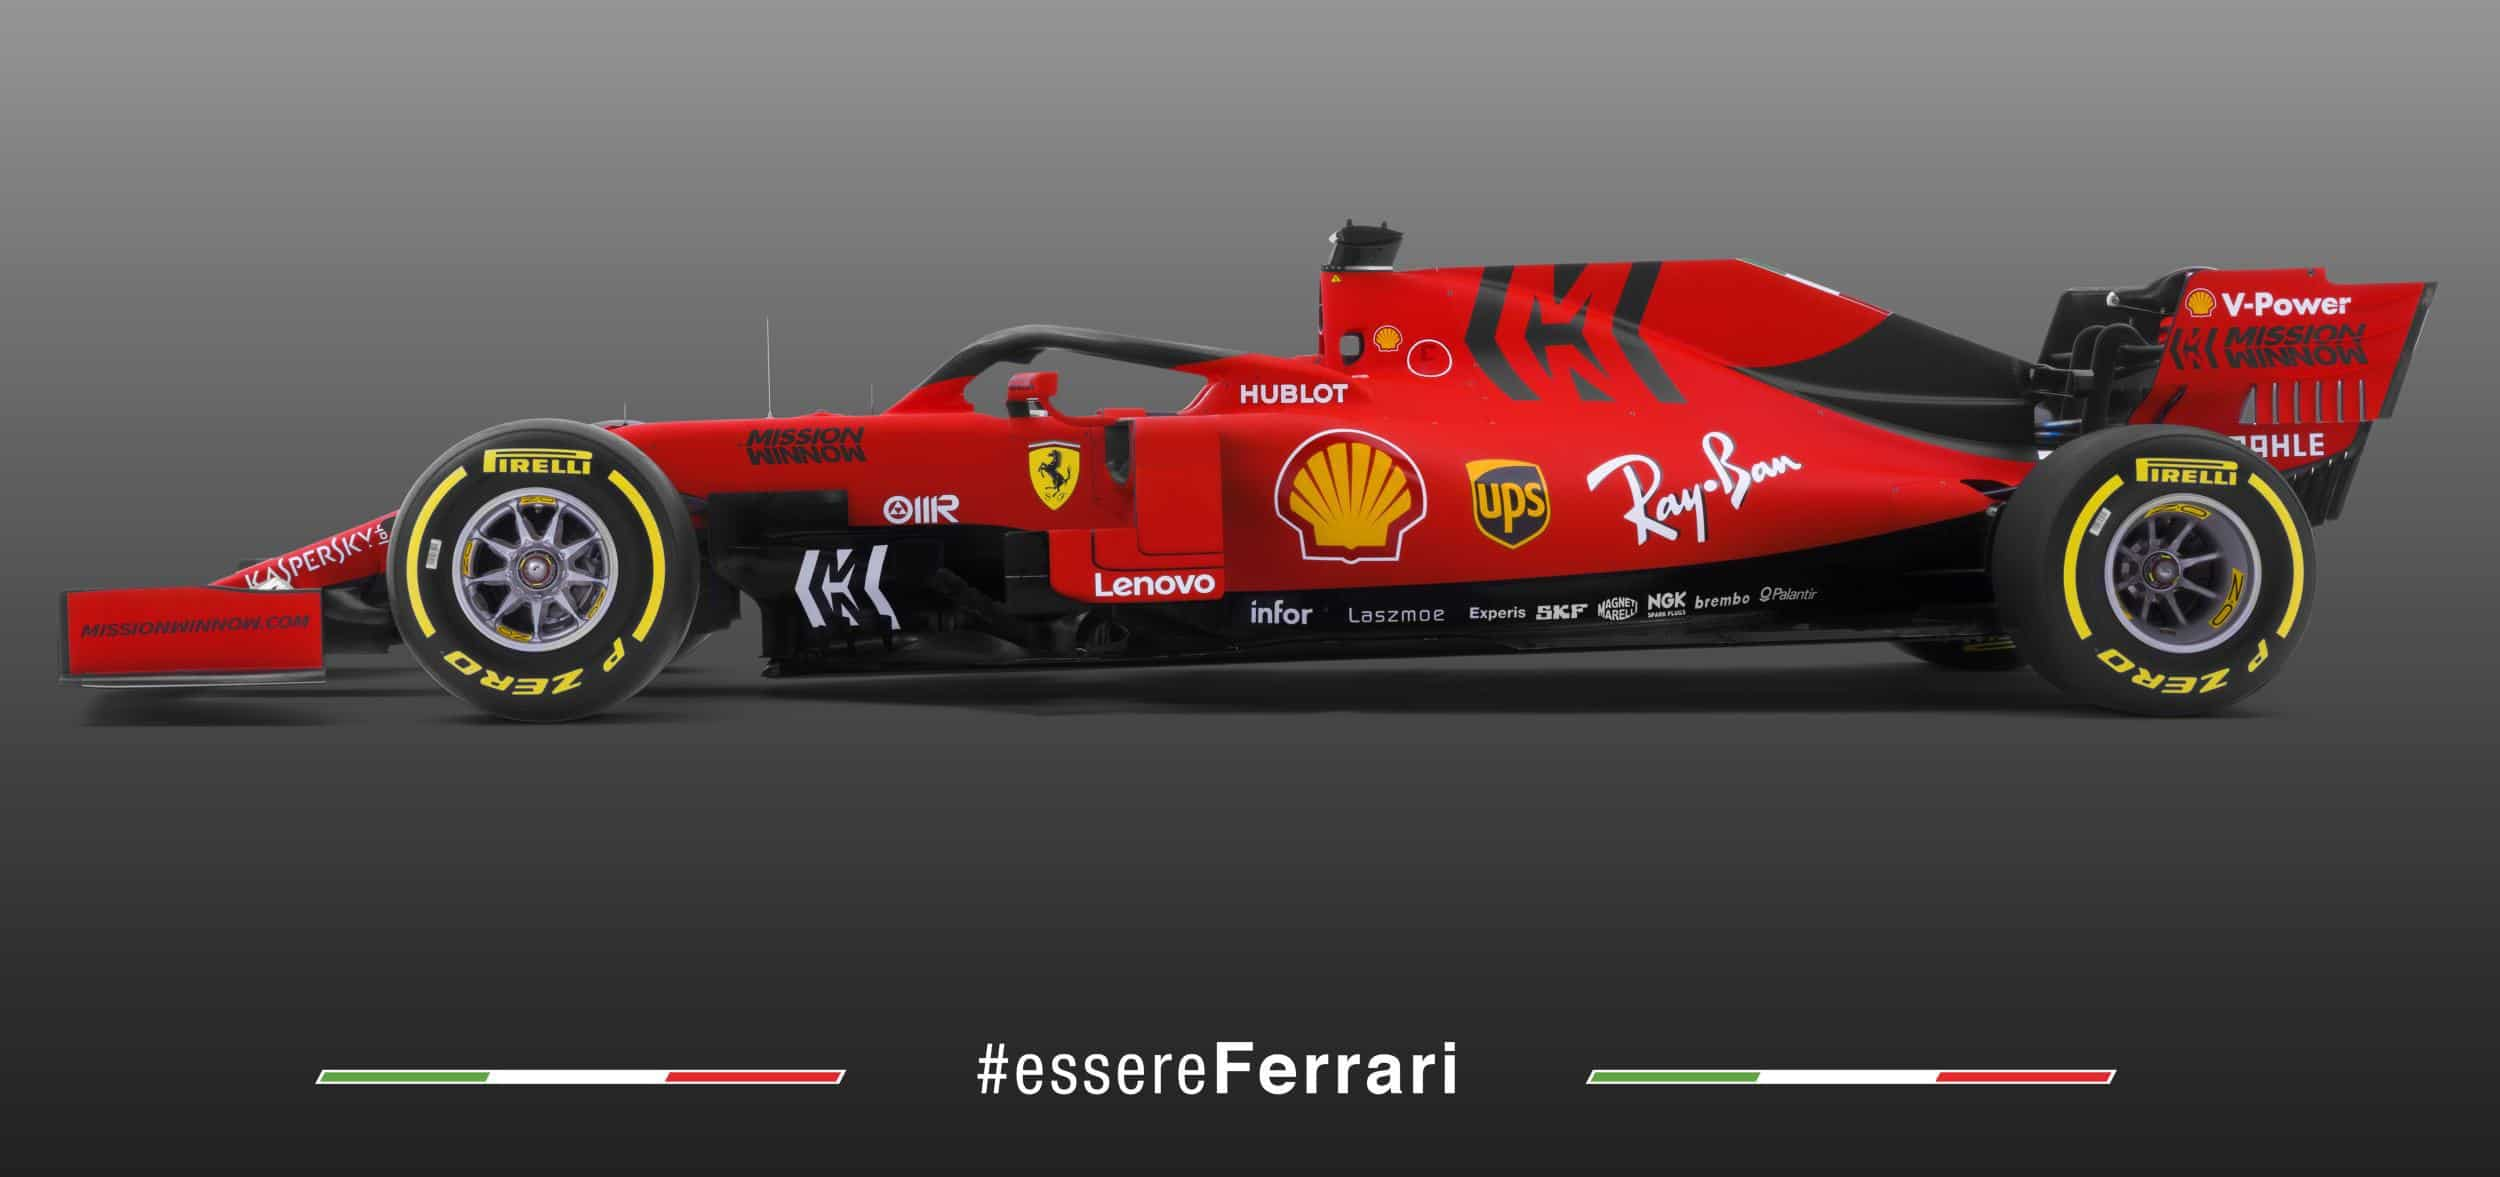 2019 Ferrari SF90 studio photo left side Photo Ferrari